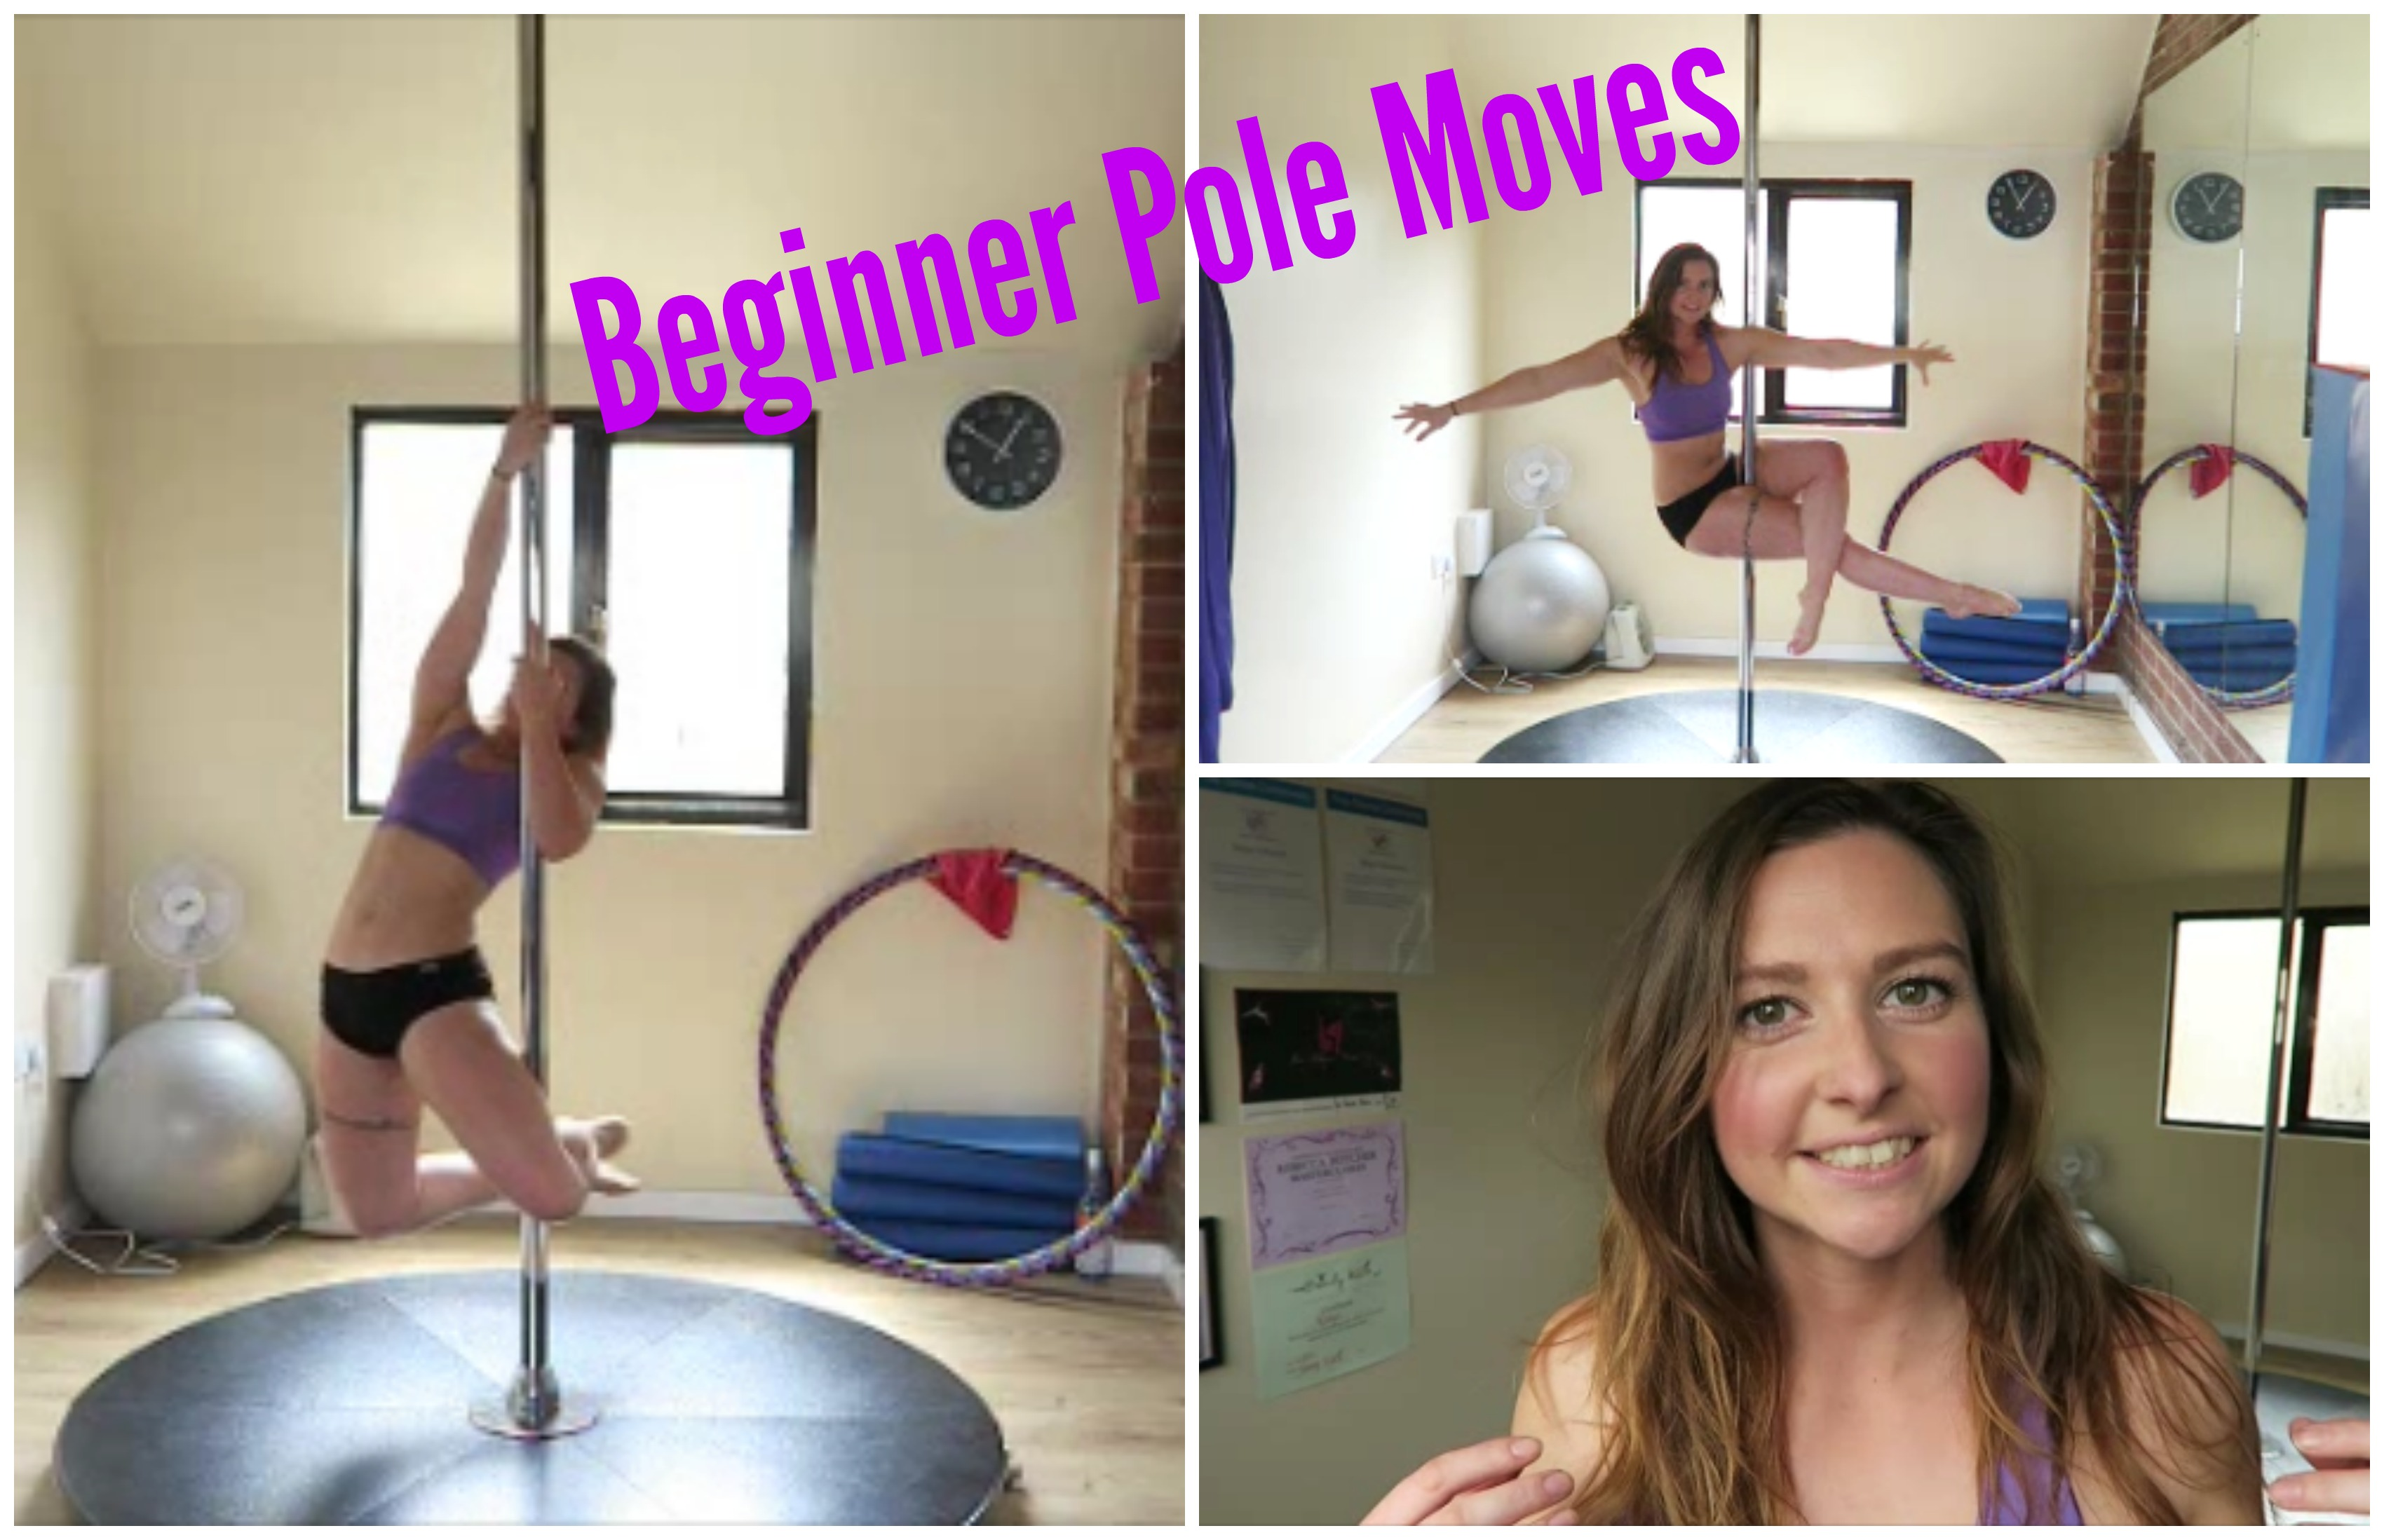 10 Beginner Pole Moves